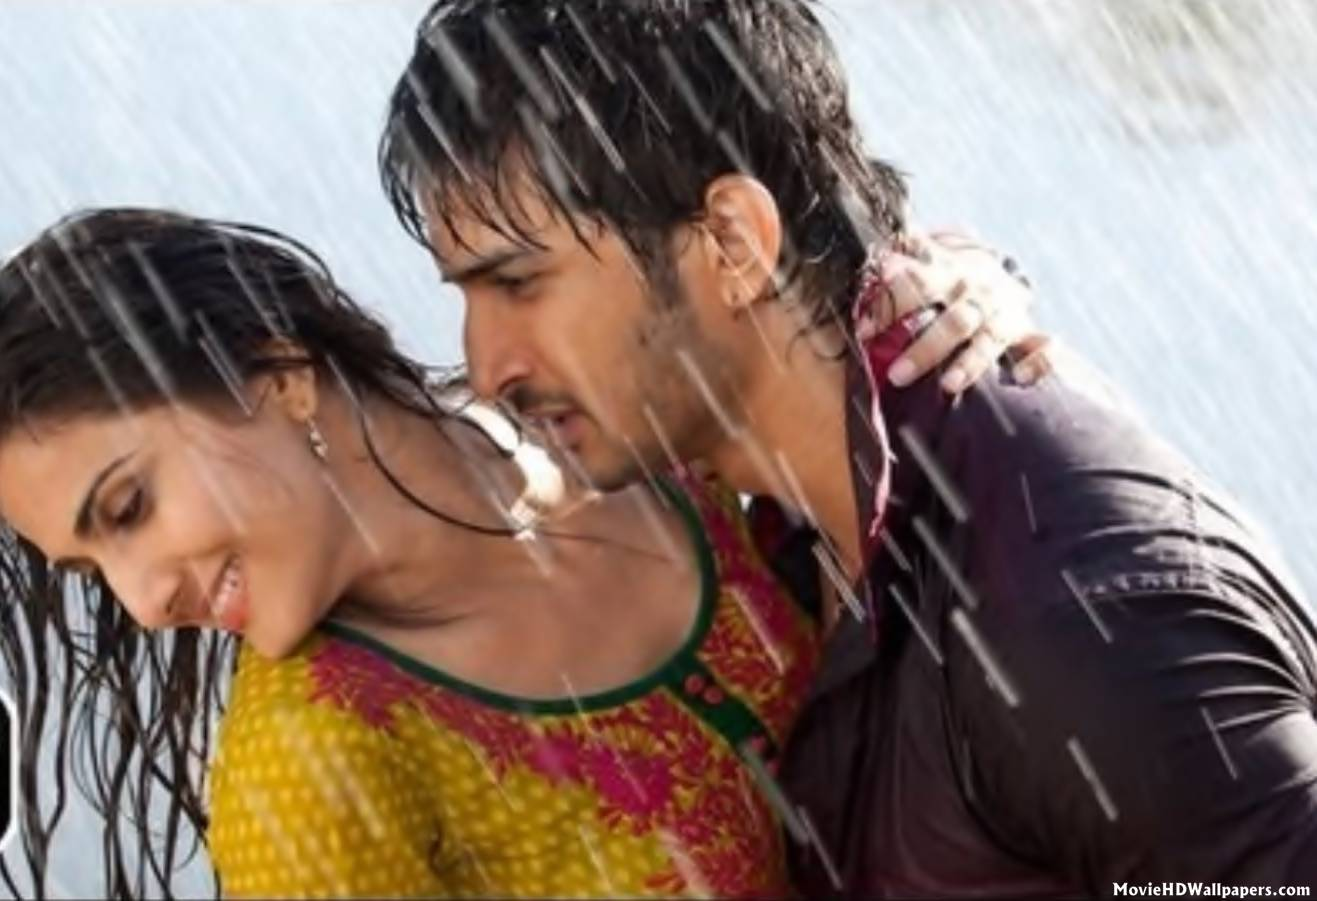 download movie trailers: shuddh desi romance movie